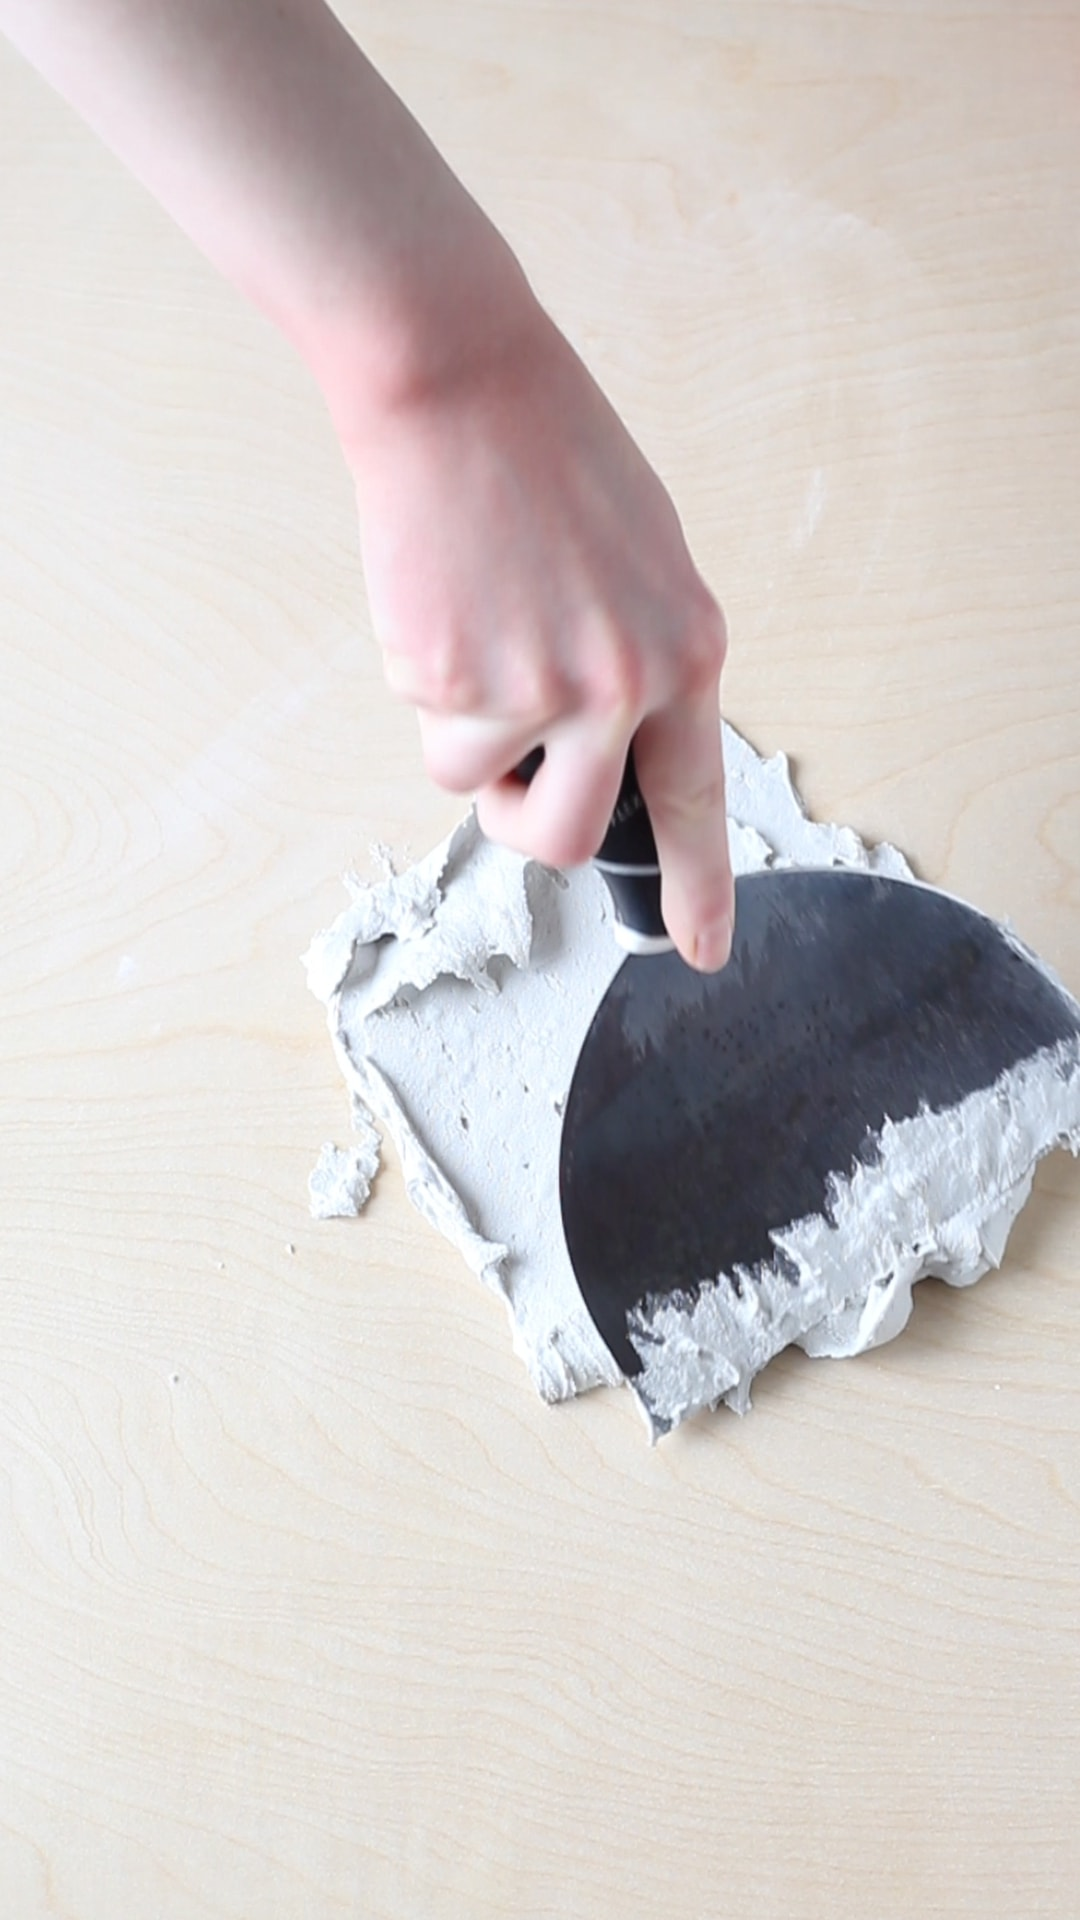 Spreading joint compound onto a plywood sheet to make a diy textured photography background.